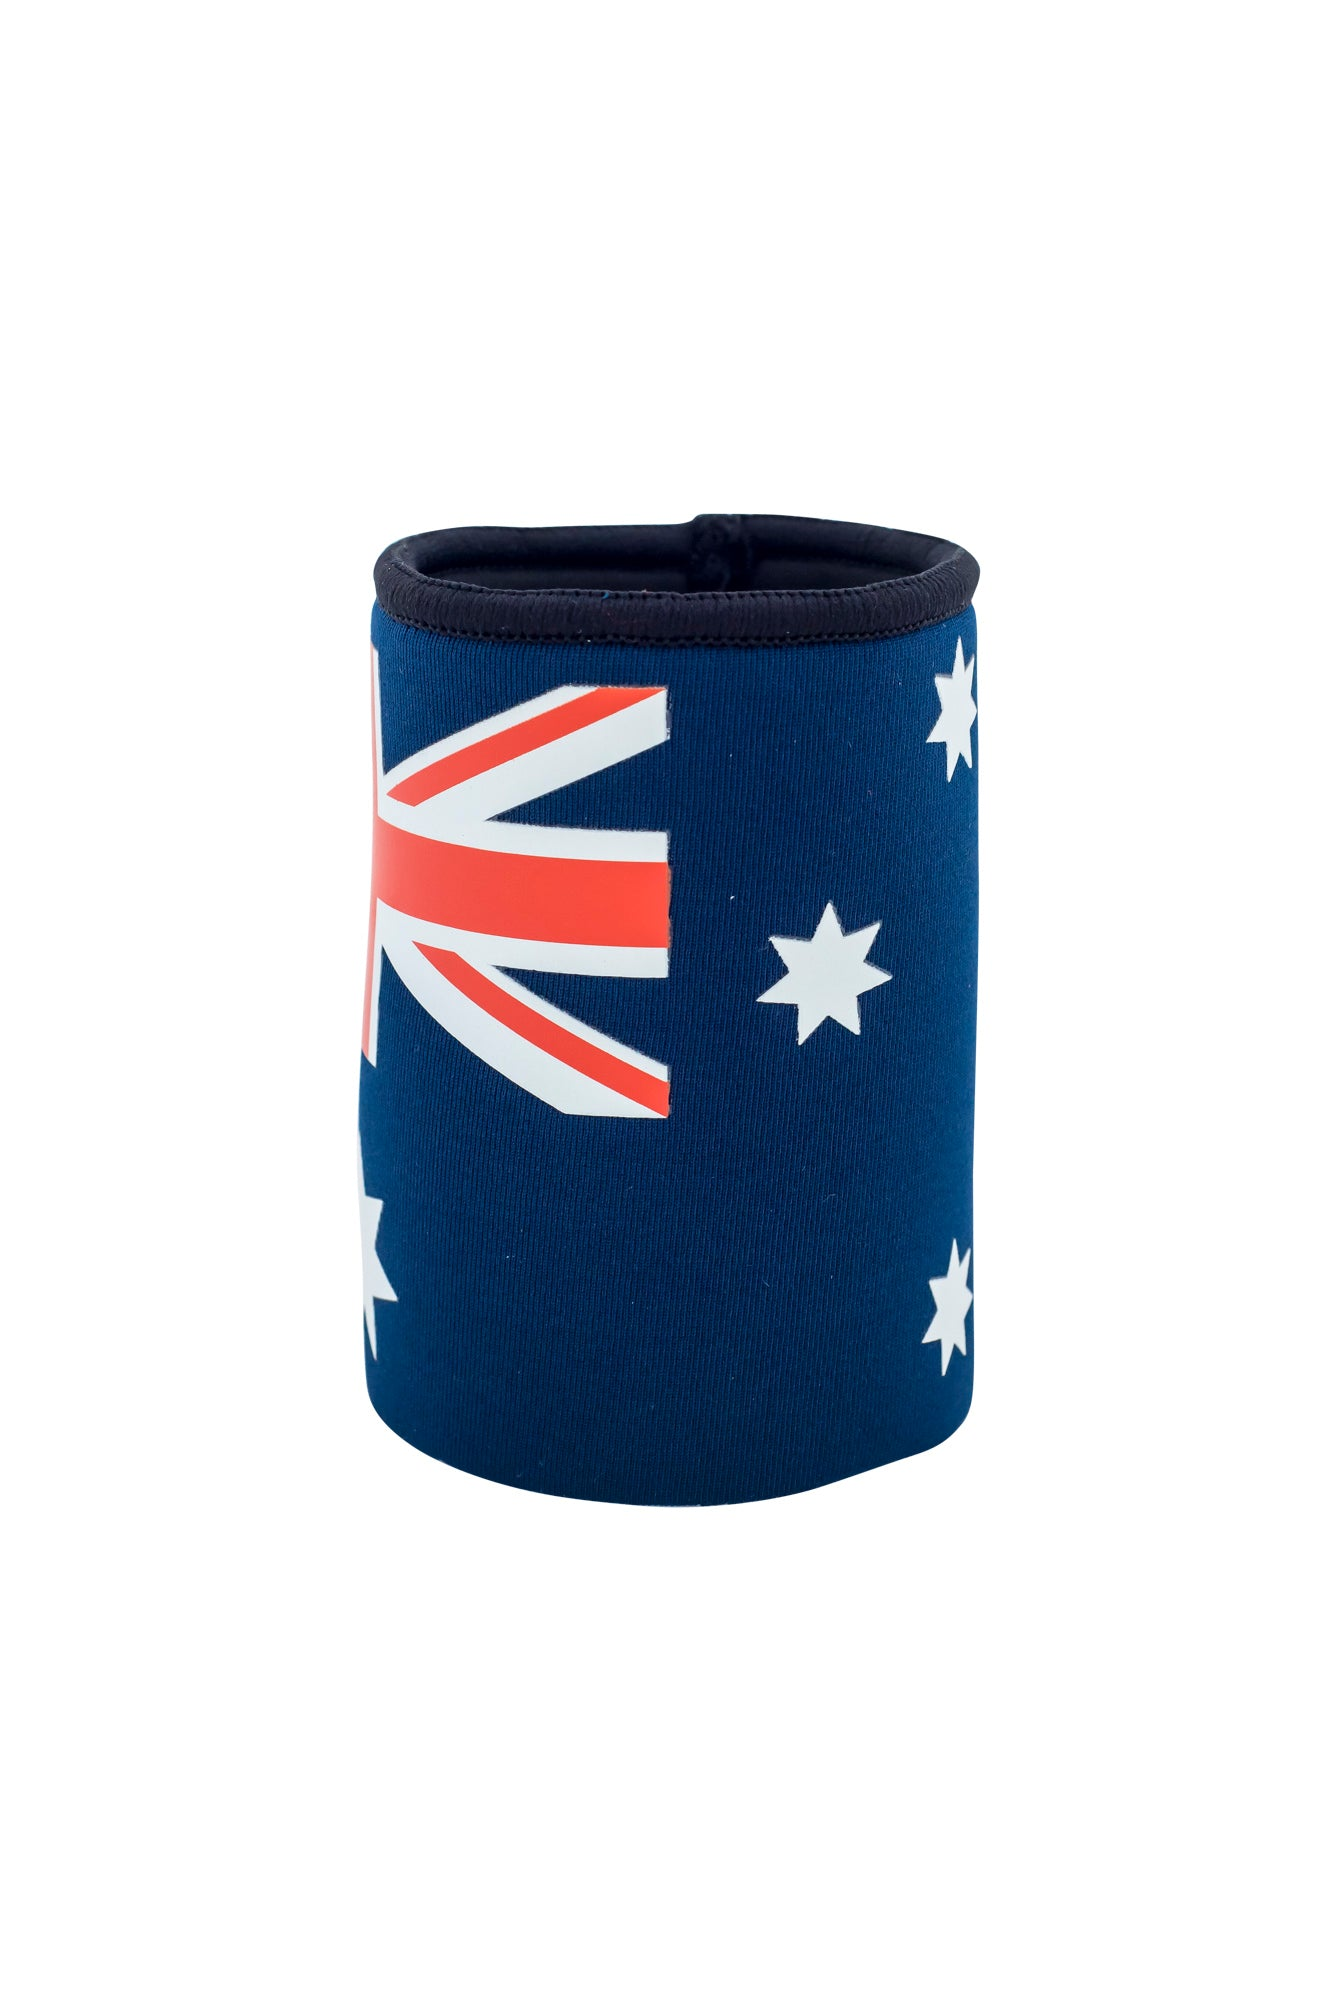 Stubby Holder, Australian Flag